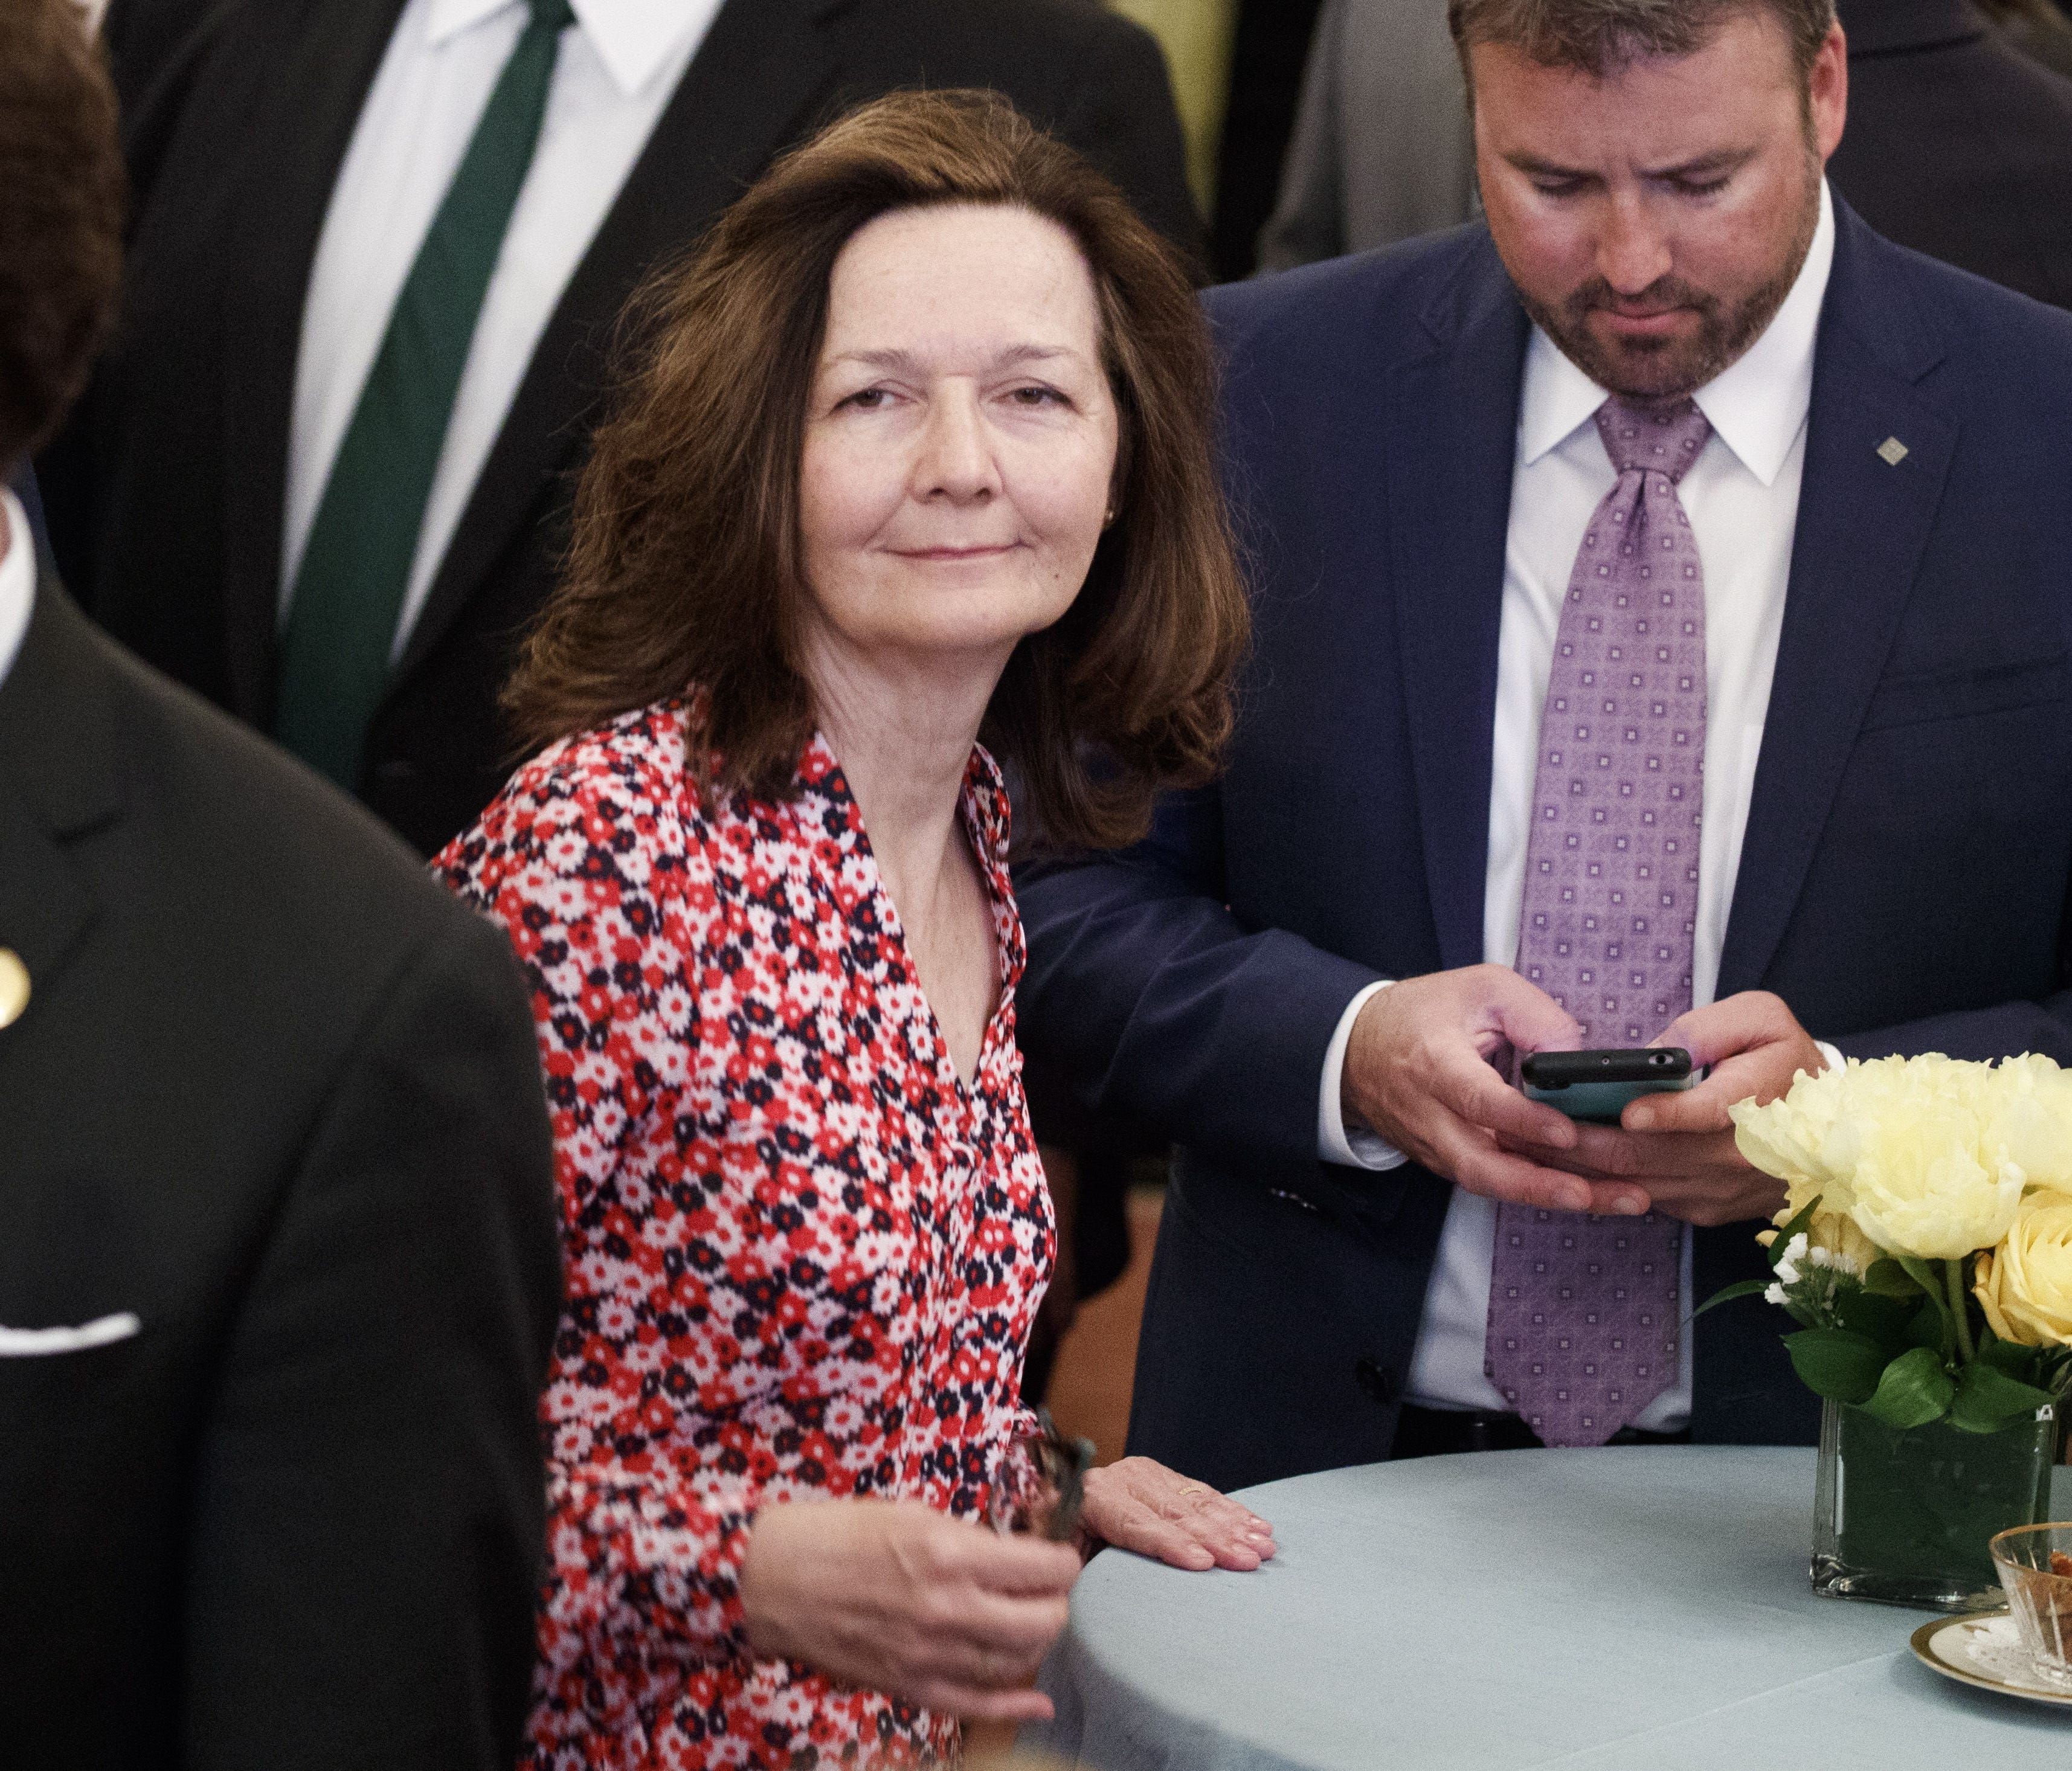 CIA Director nominee Gina Haspel attends the ceremonial swearing in ceremony for U.S. Secretary of State Mike Pompeo at the State Department in Washington, D.C. on May 2, 2018.